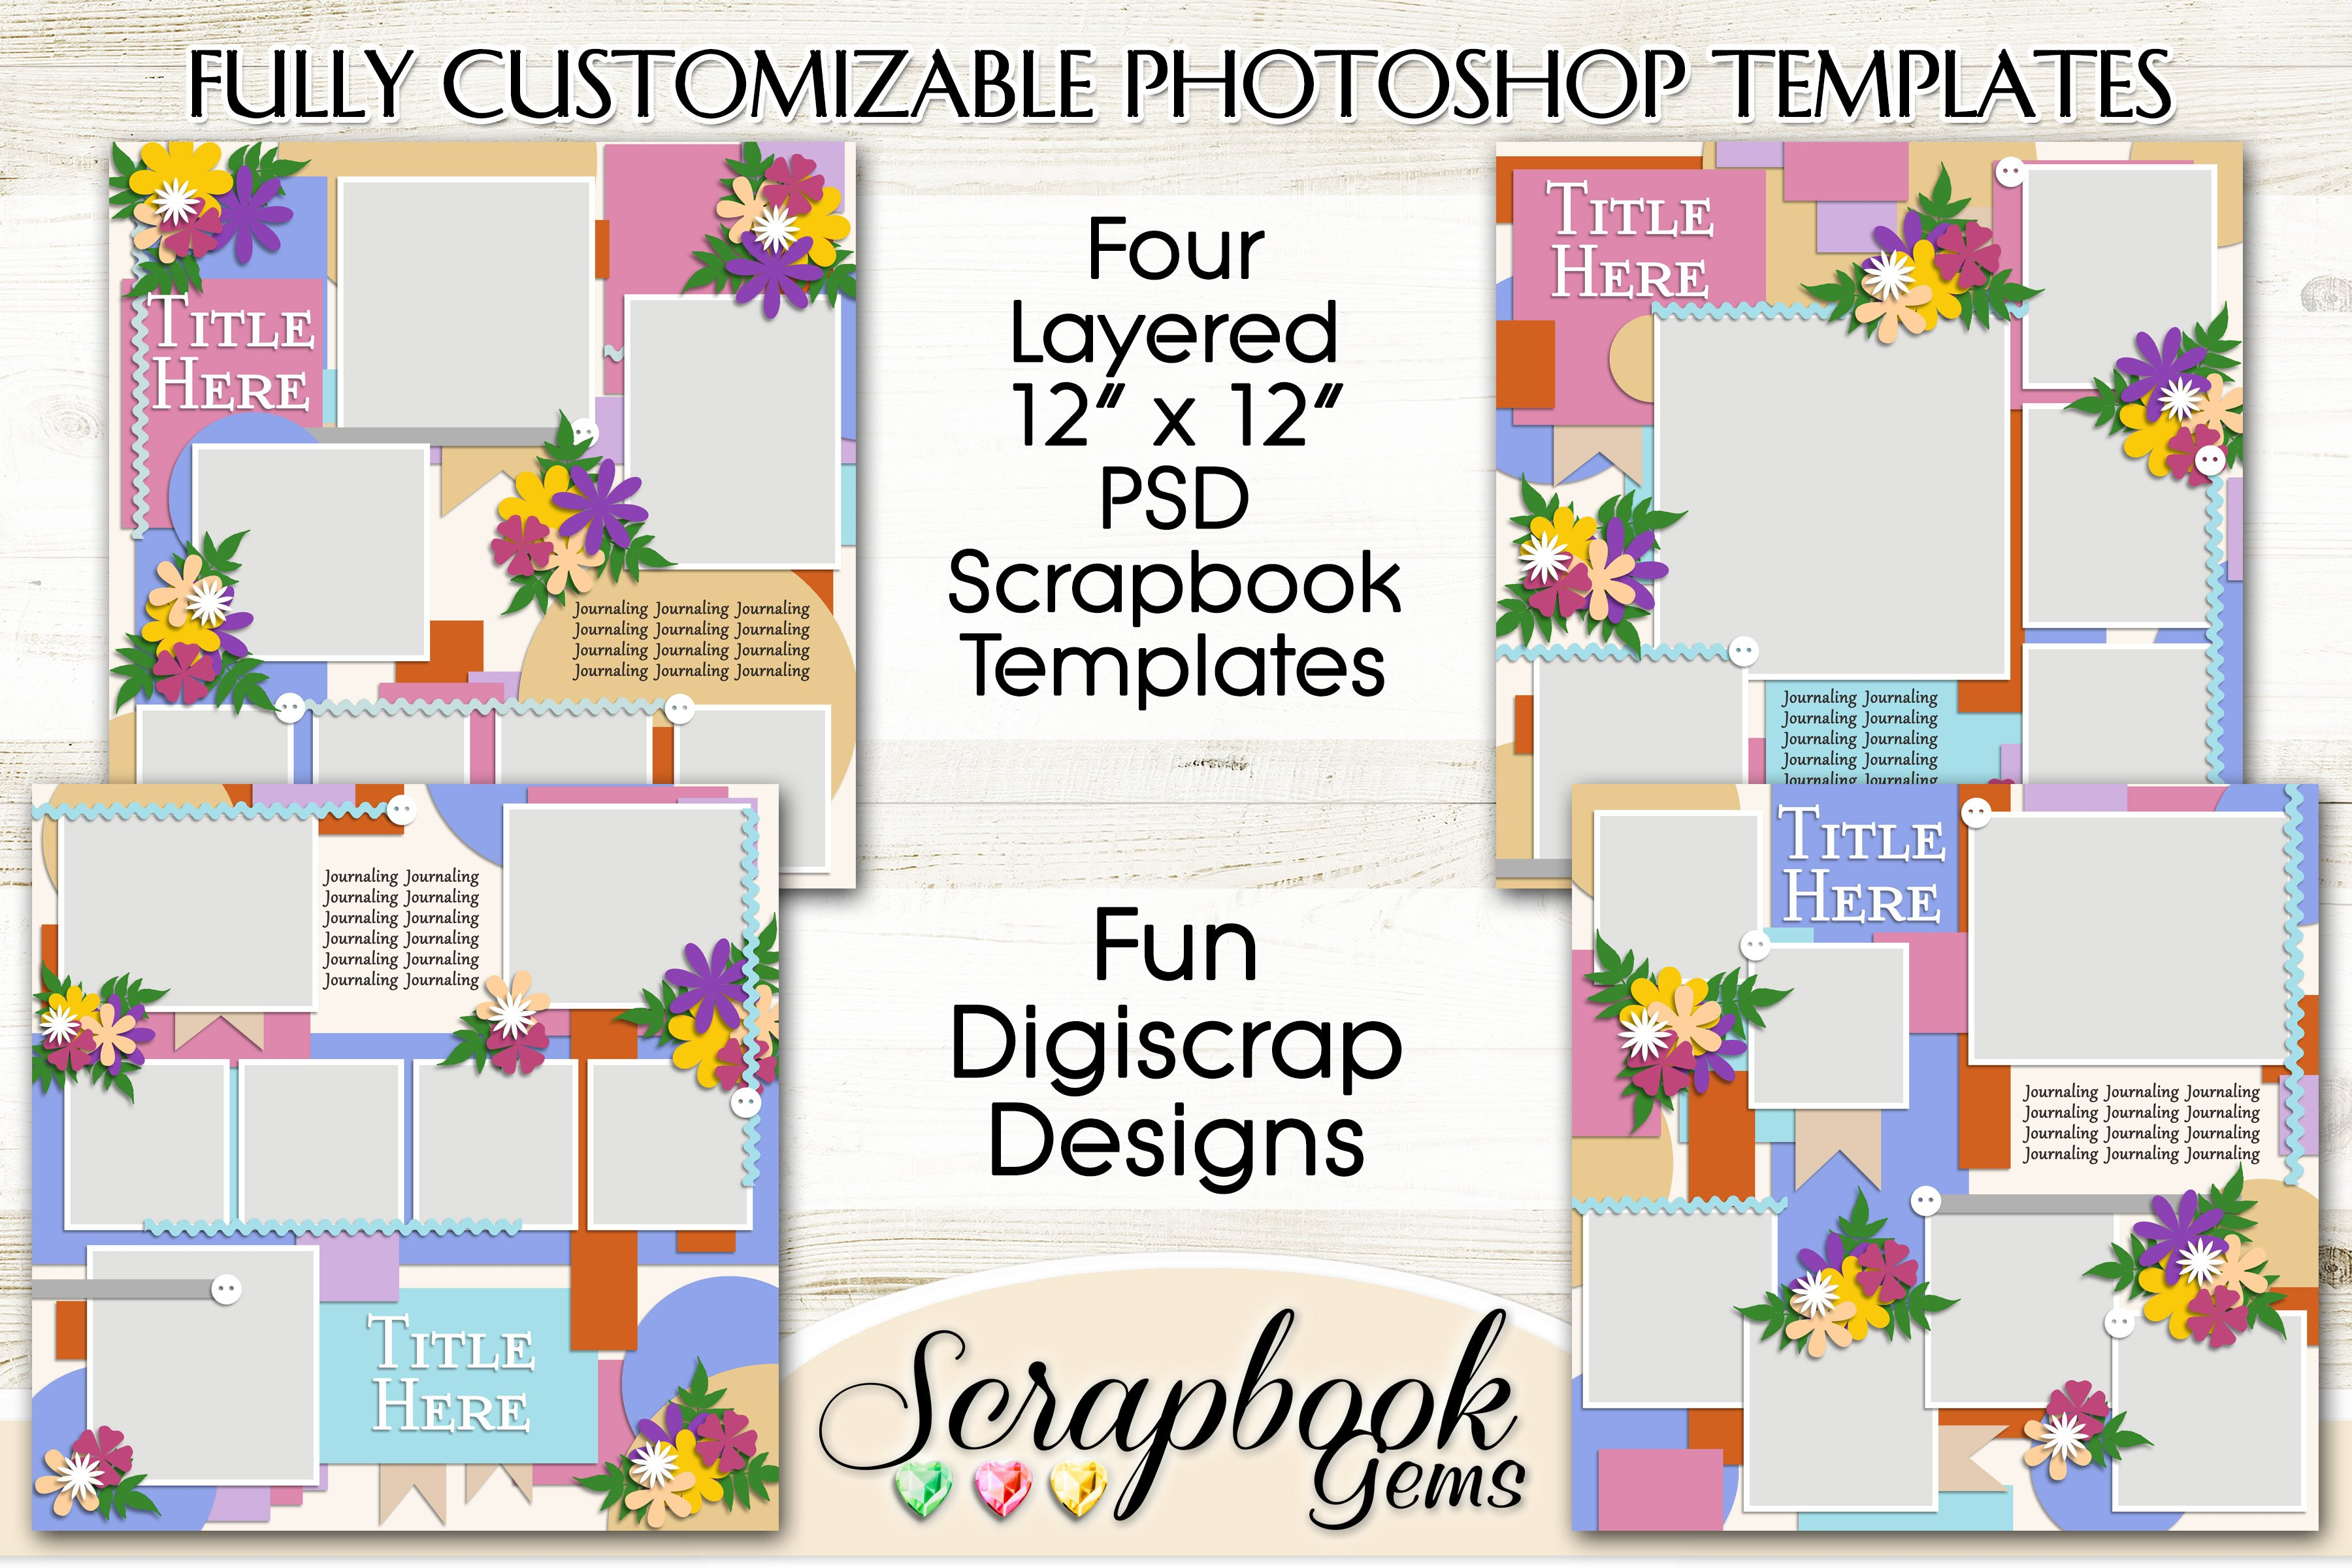 How to use digital scrapbook templates (photoshop and elements.